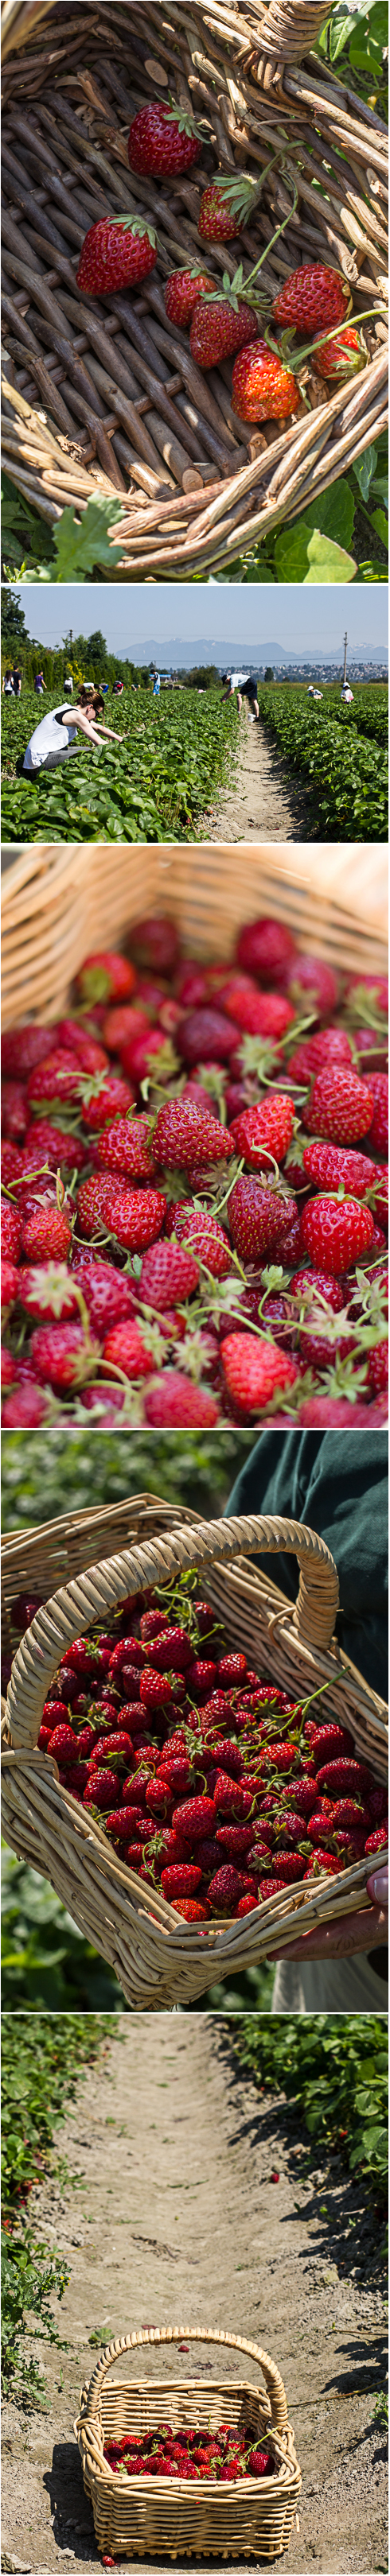 Strawberry Picking. Photography ©2012 Helena McMurdo